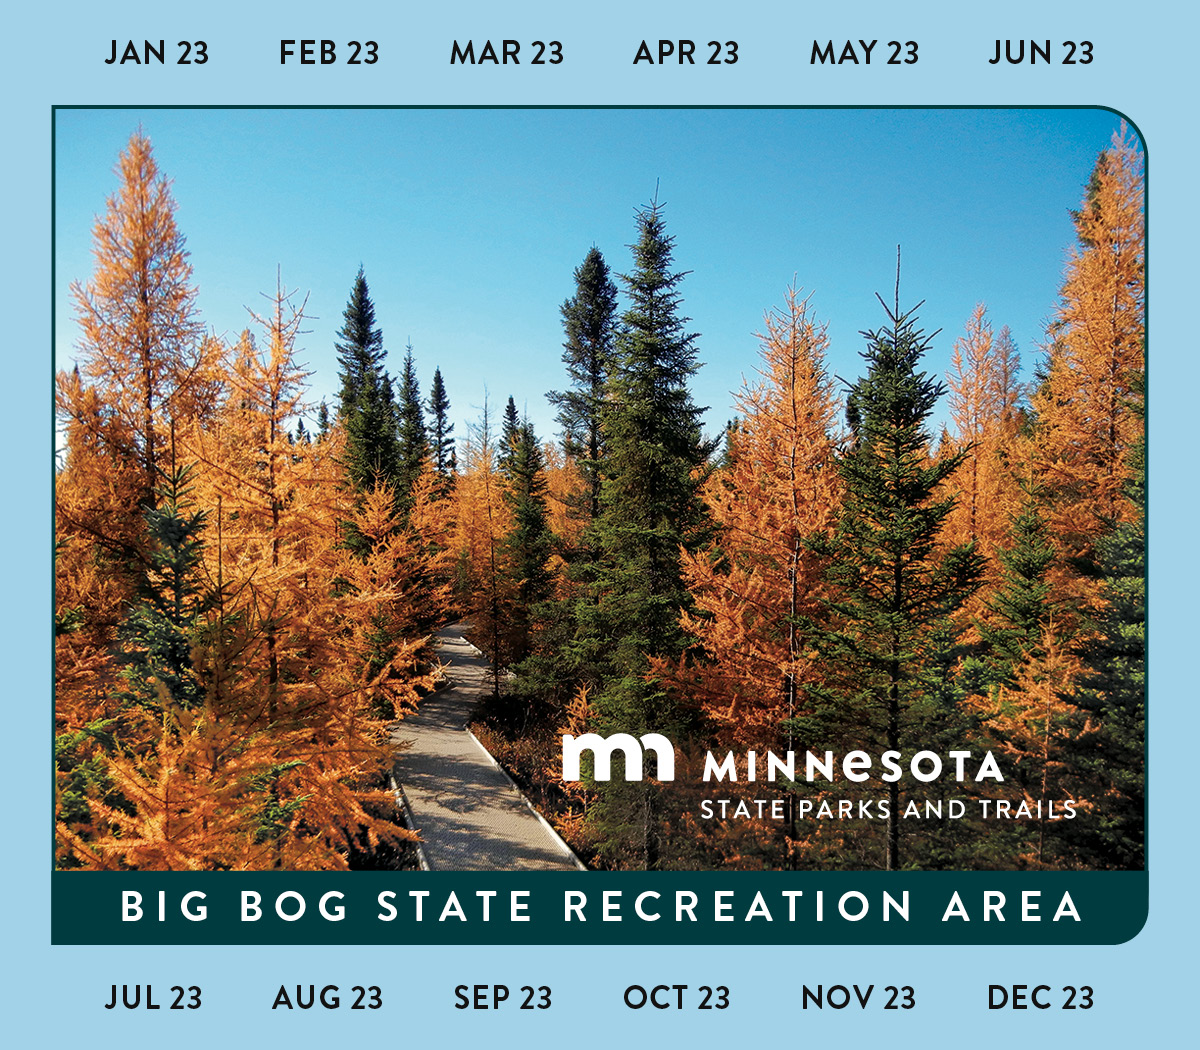 Image of the Minnesota State Park Annual Permit